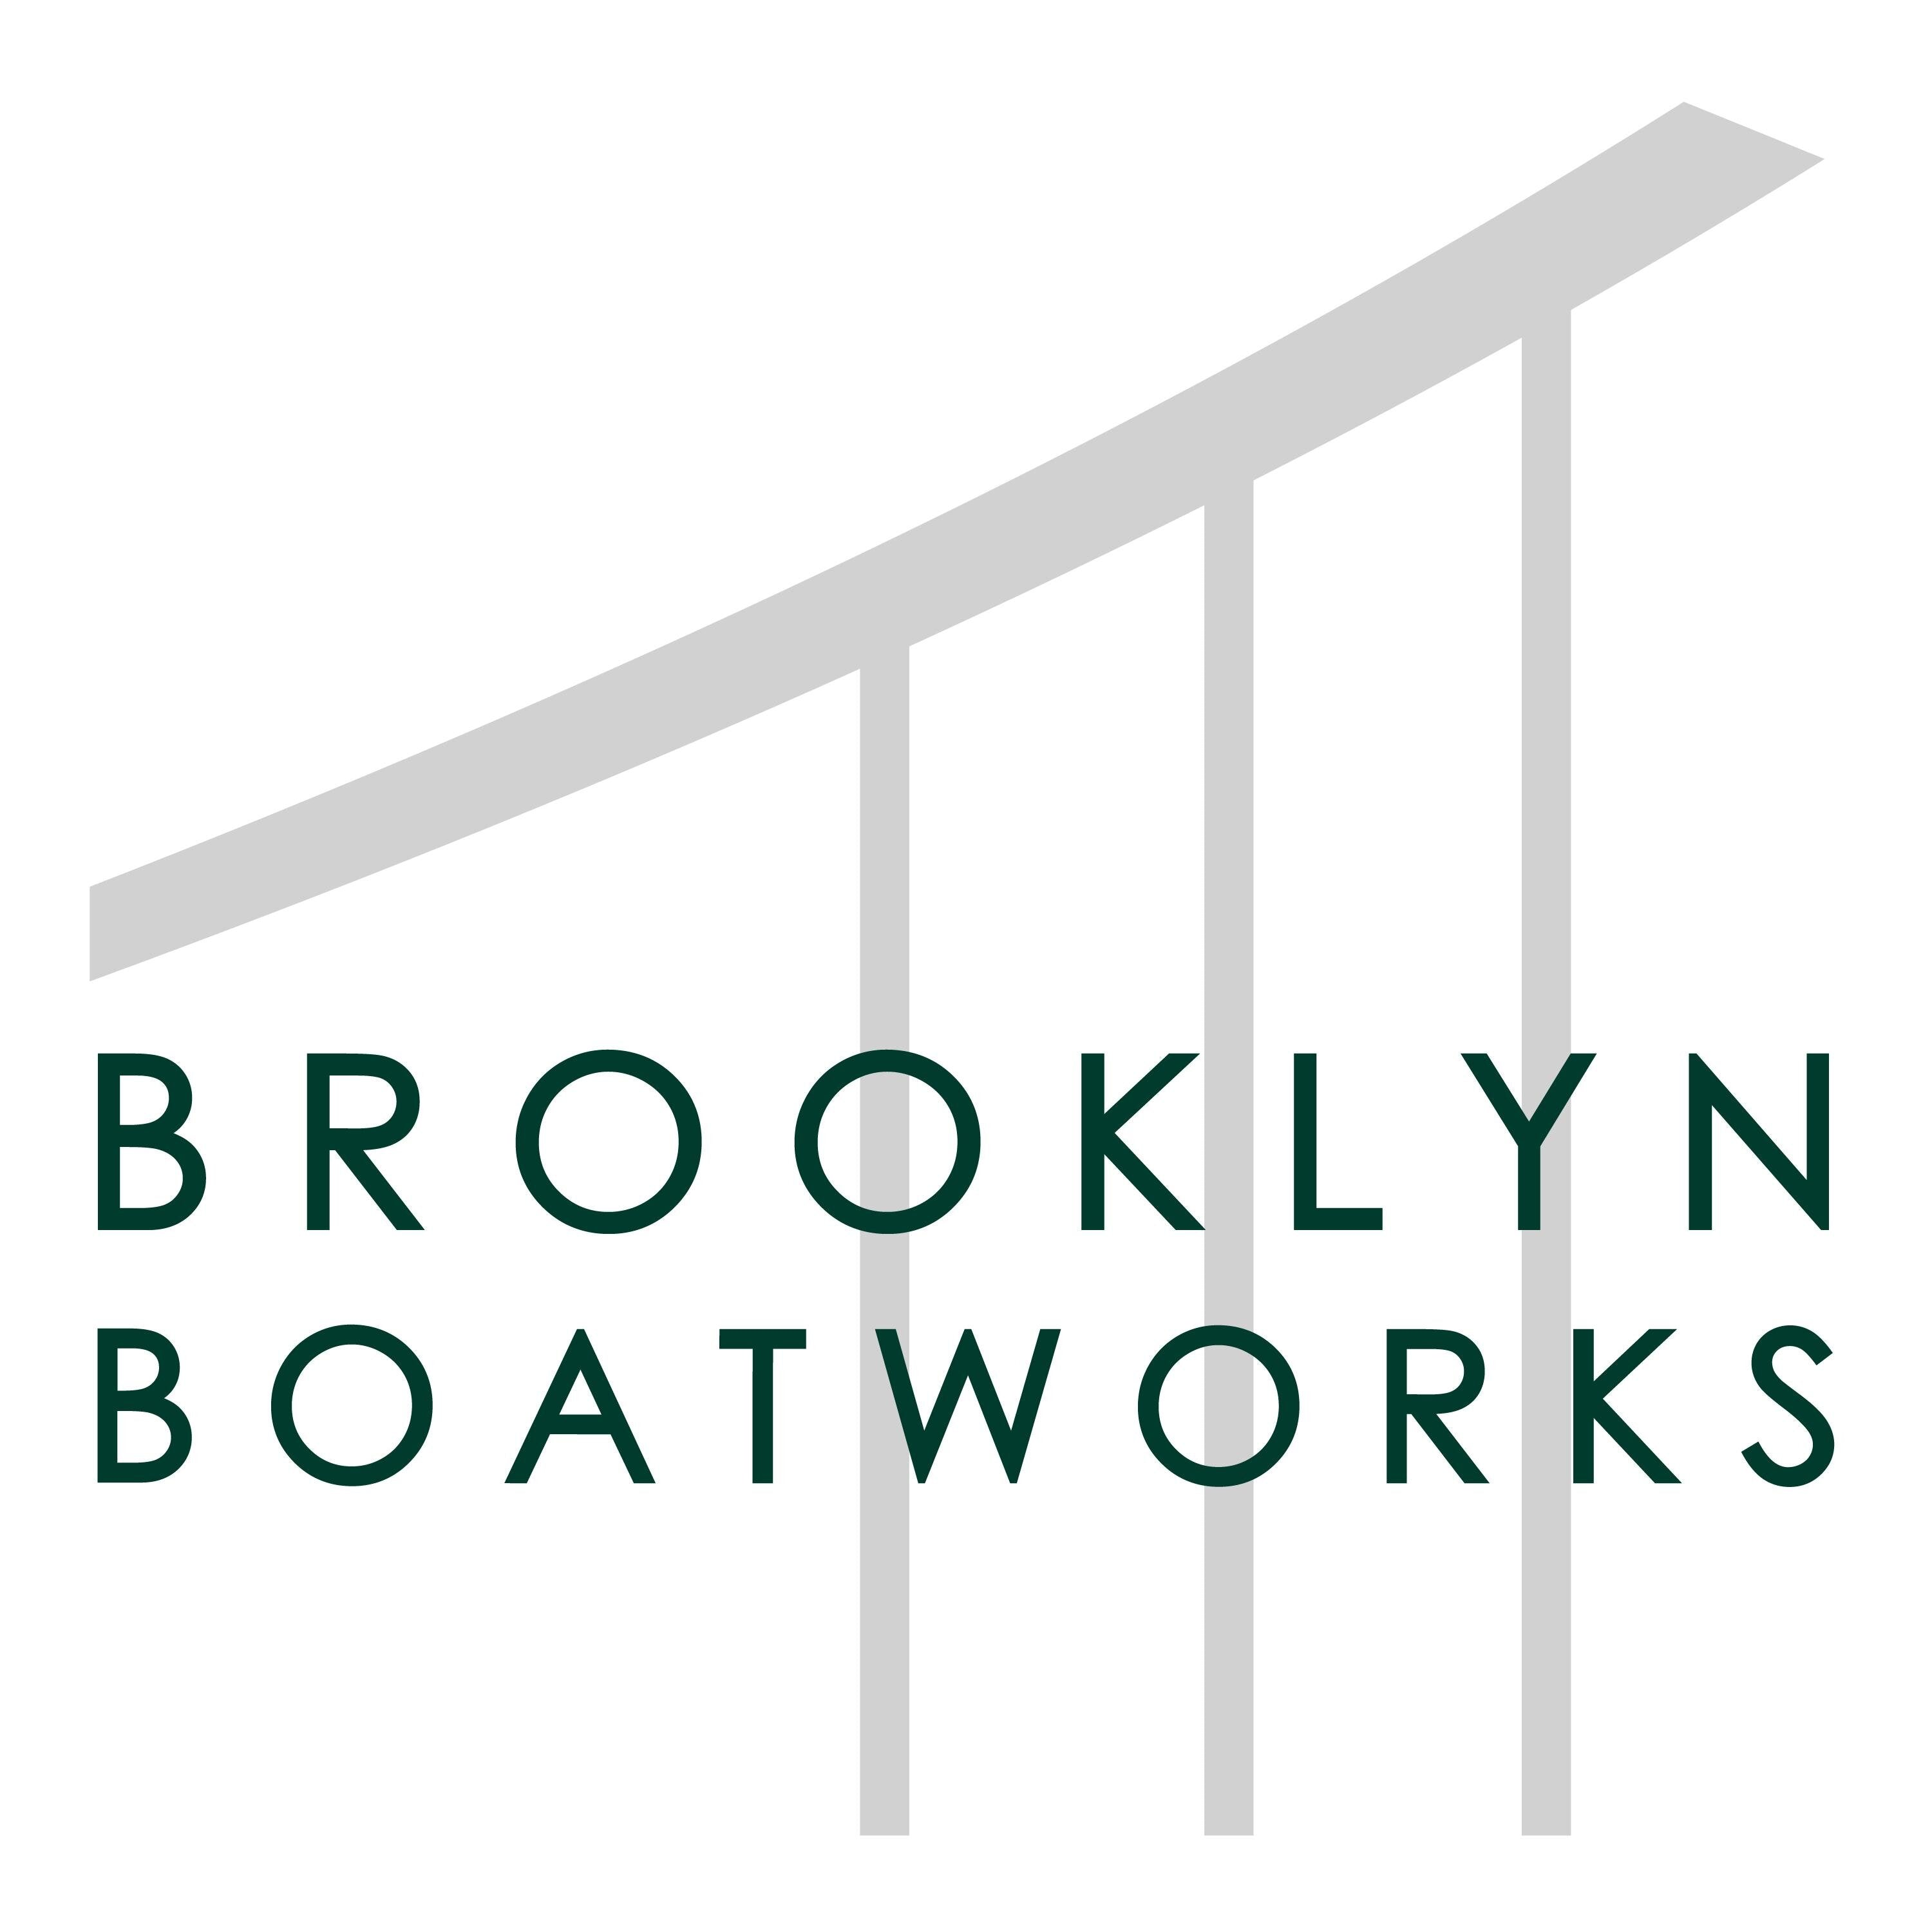 Brooklyn Boatworks - Works With UGP